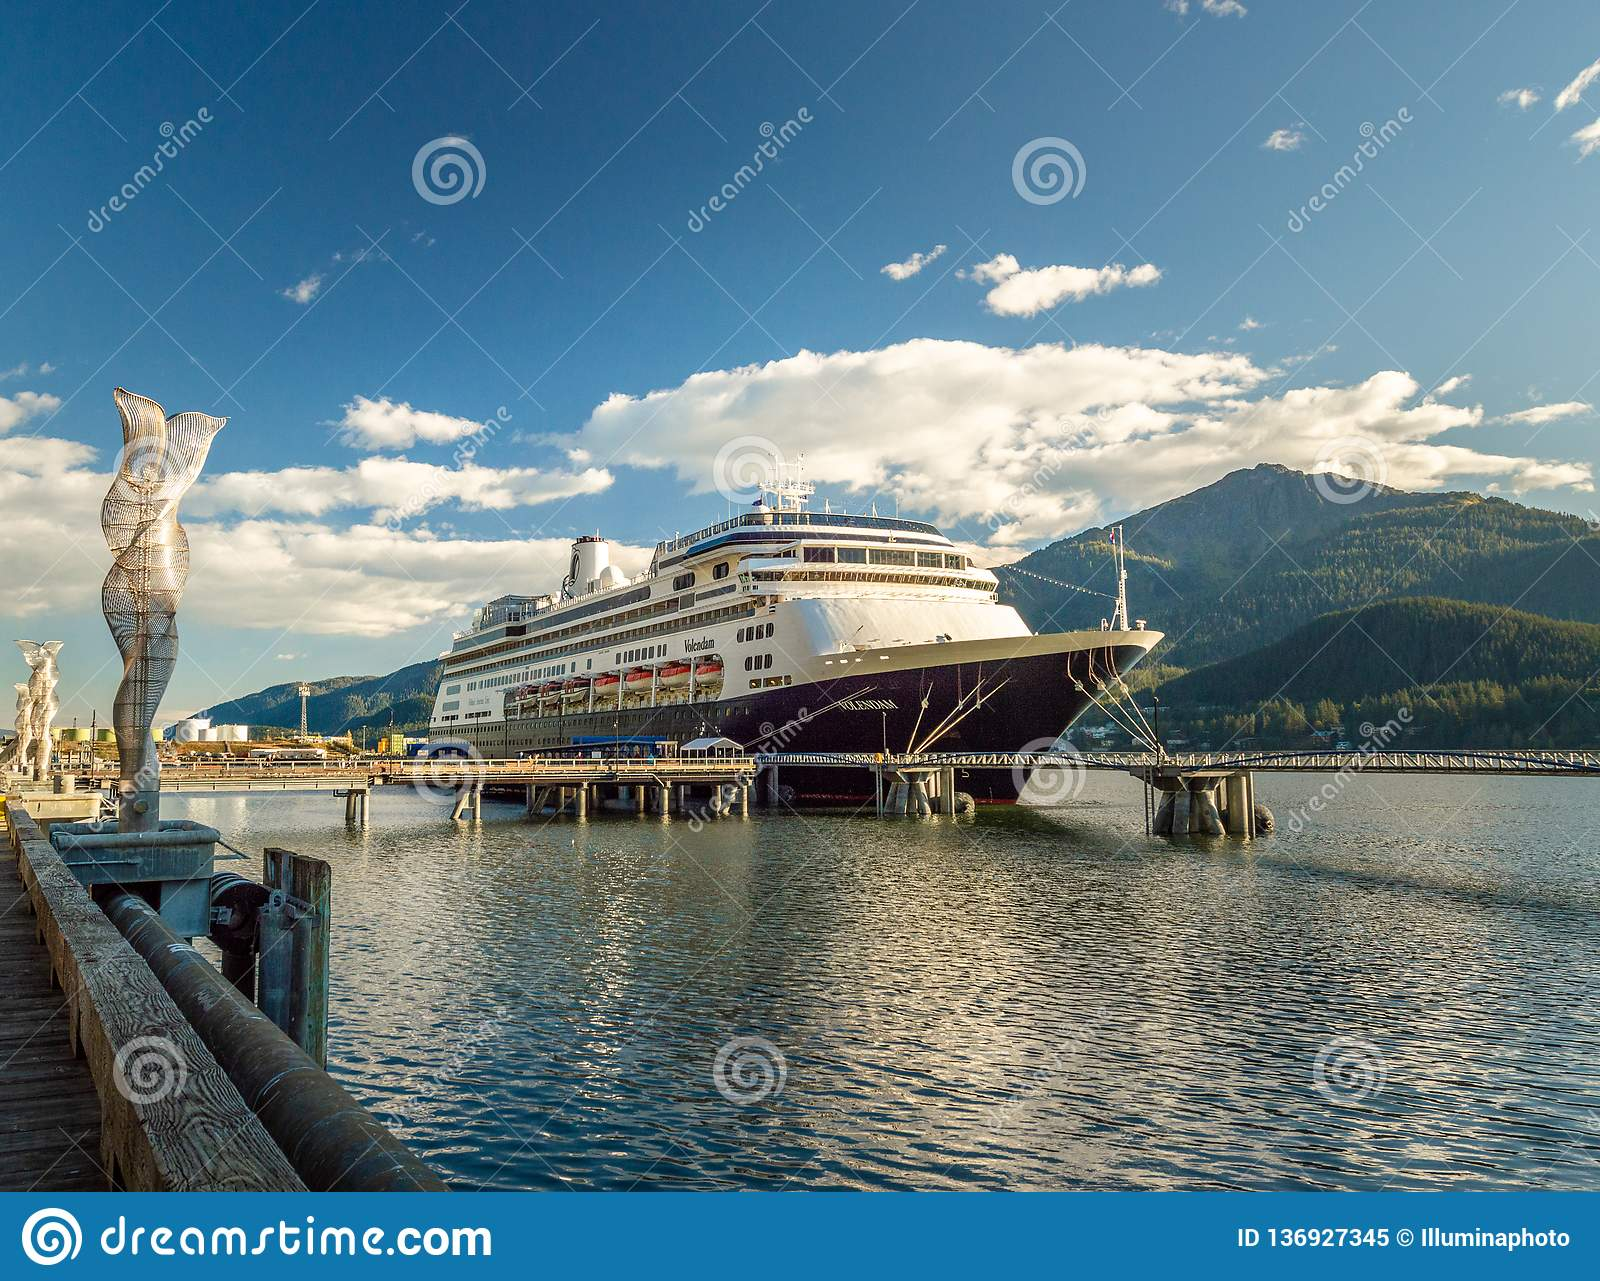 September 14, 2018 - Juneau, Alaska: The Volendam cruise ship docked in port.